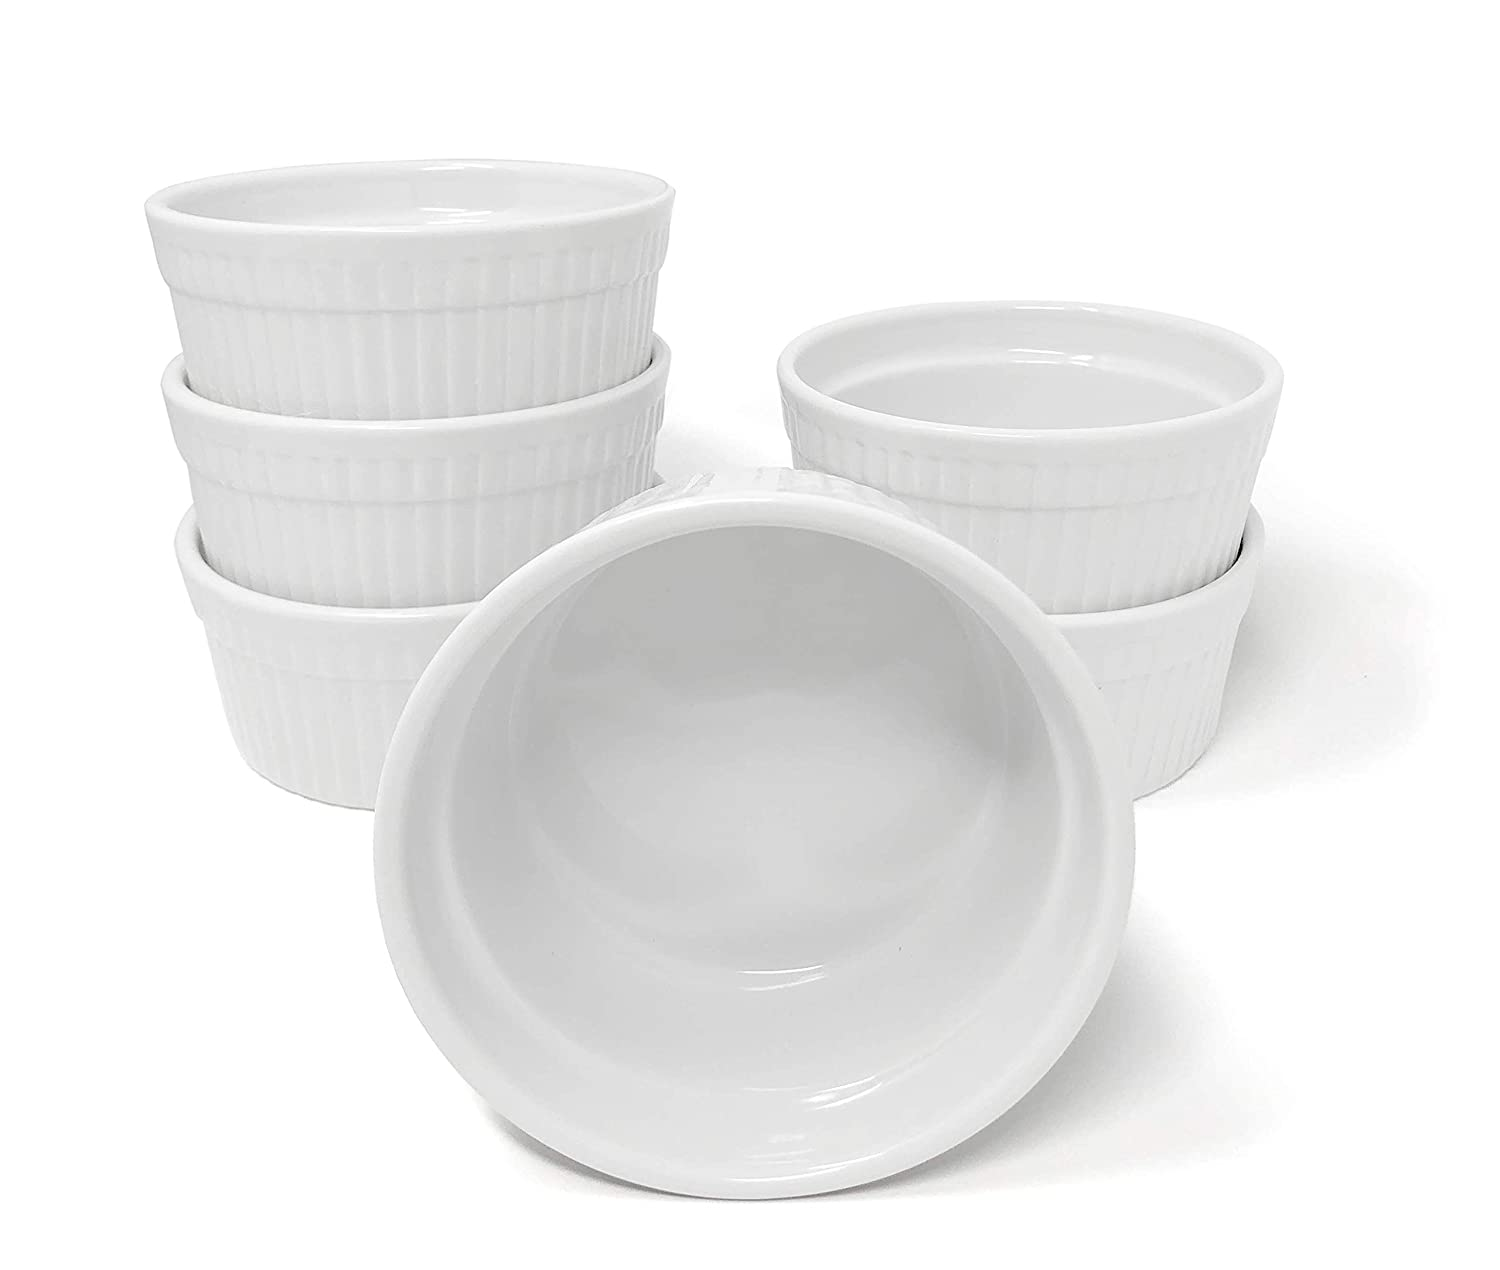 White Porcelain 6-Piece Ramekin Set, 12oz. Dishwasher, Microwave and Oven Safe!